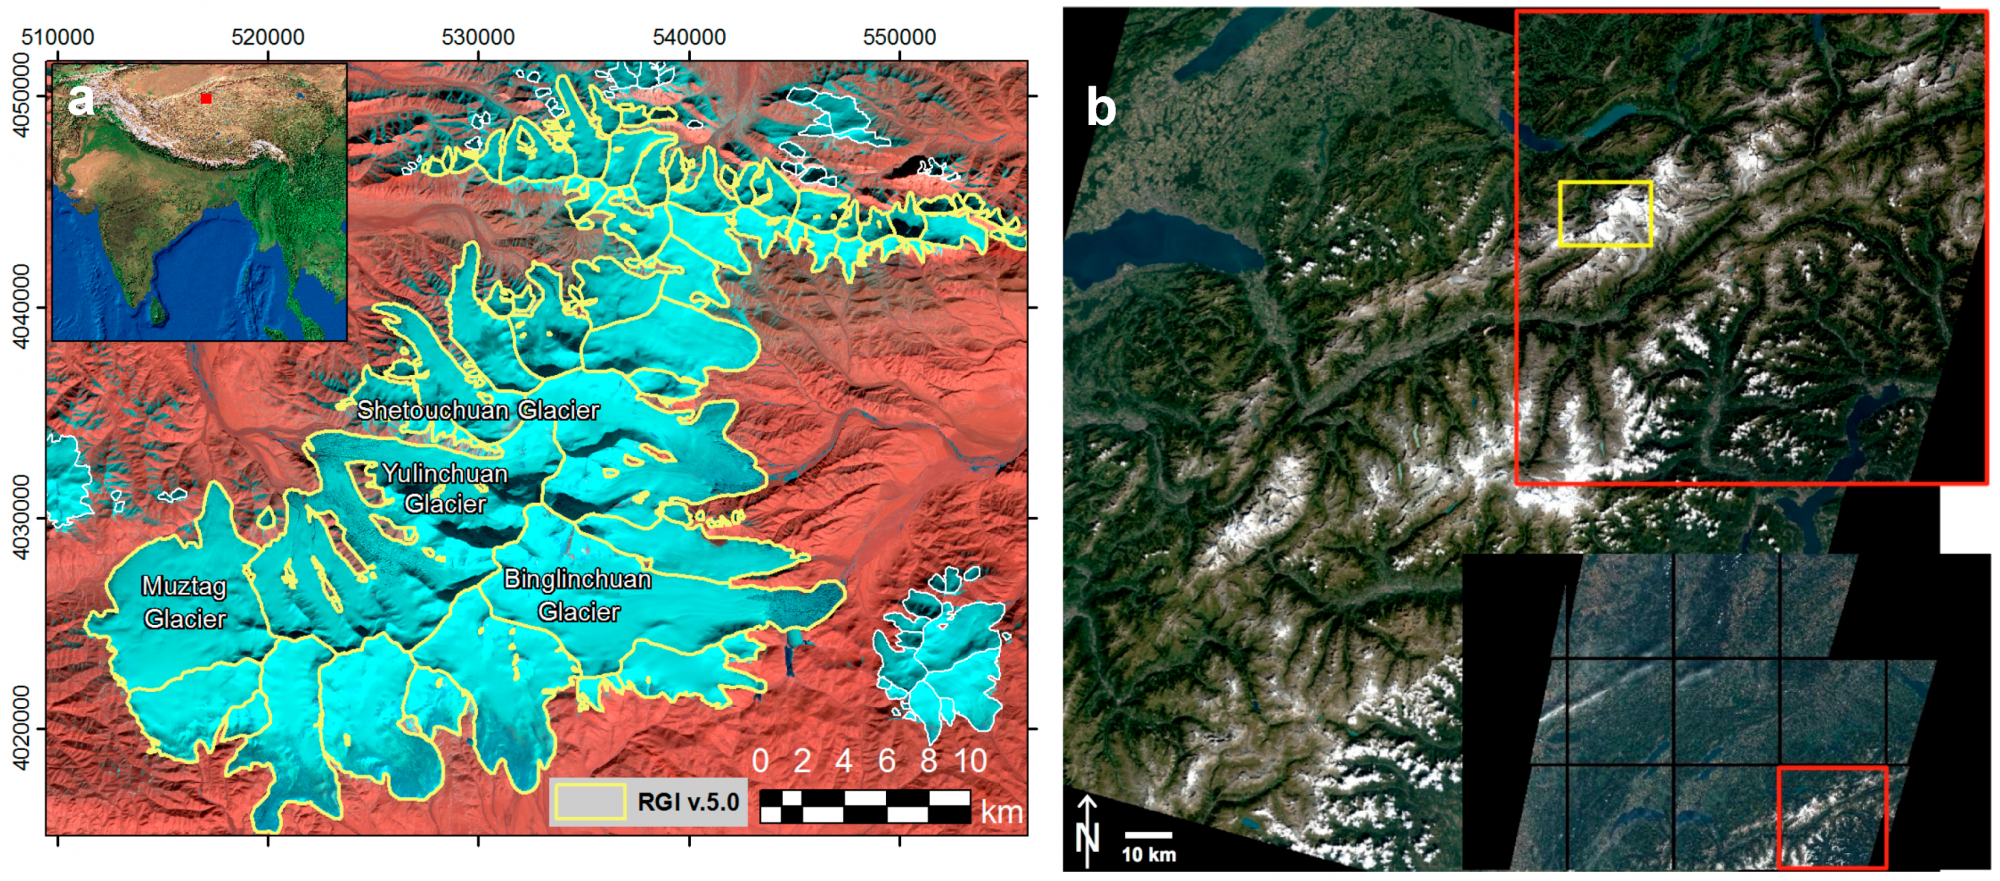 Test region 1 in the Kunlun Mountains in northern Tibet using a S2A image from 18 November 2015 (Source: Remote Sensing).